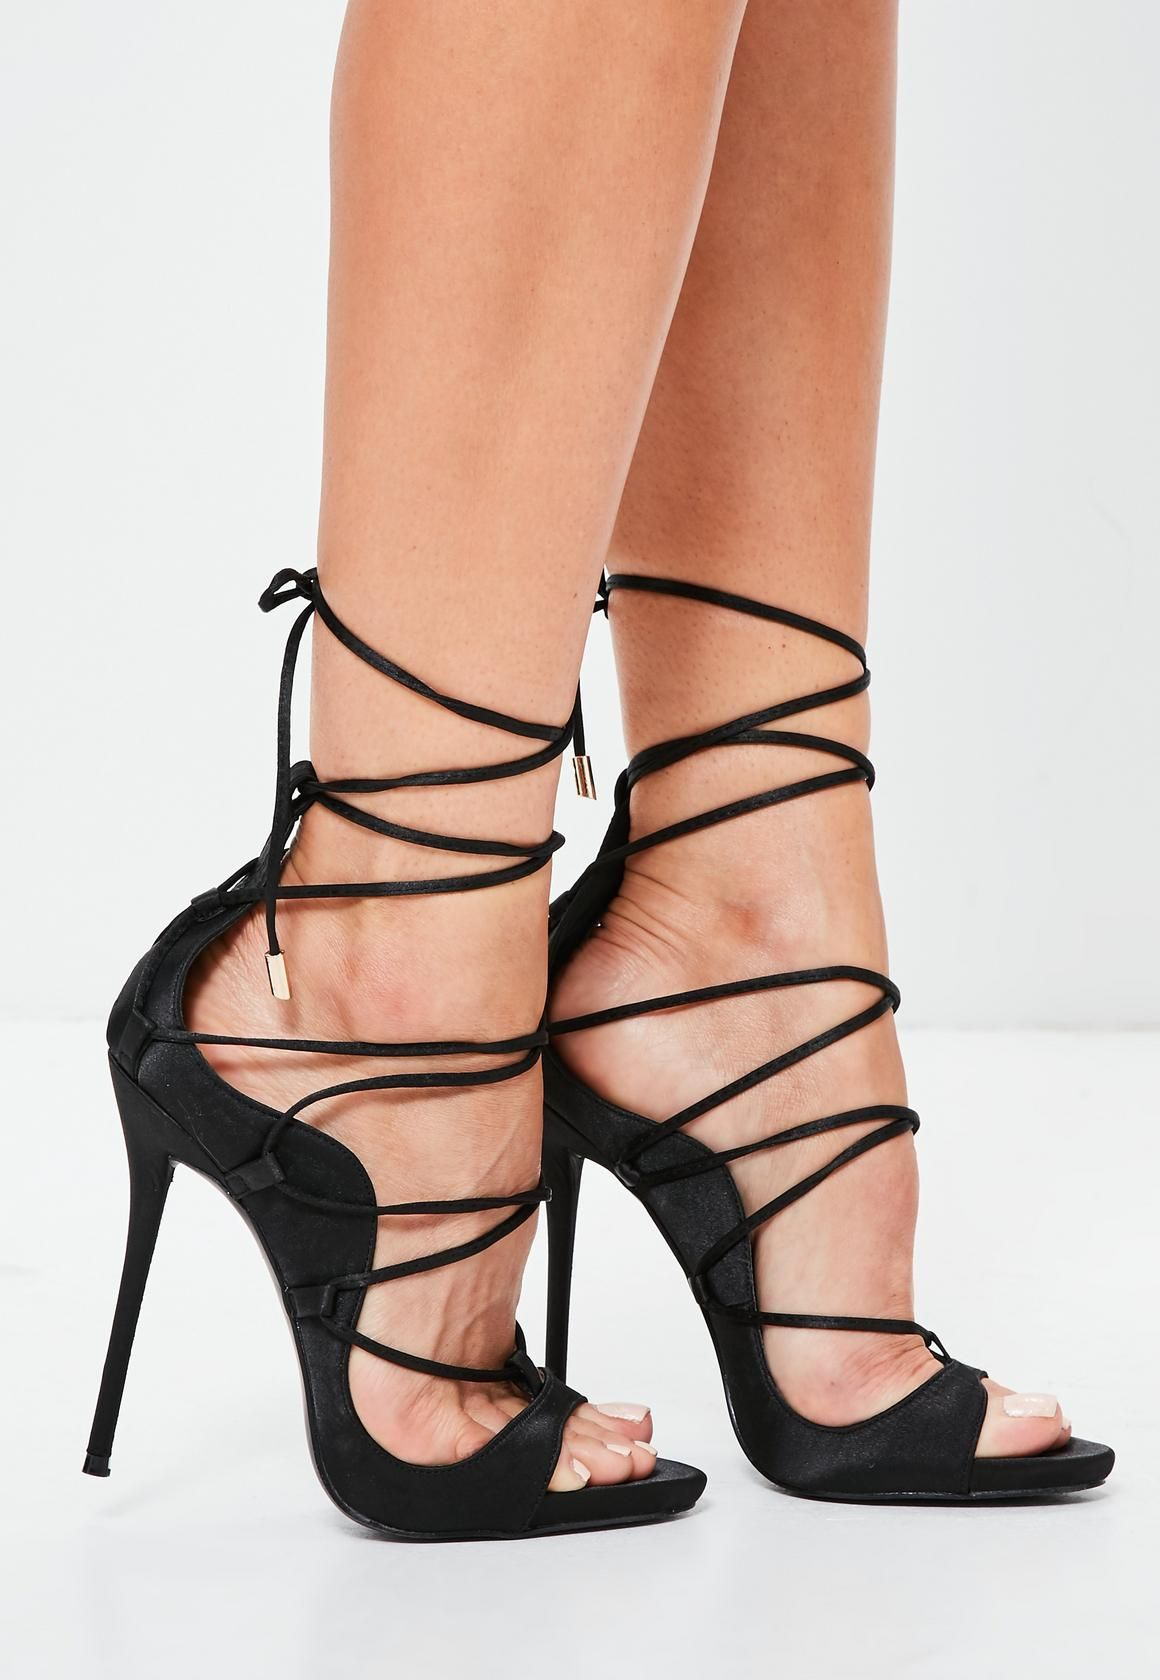 fb83d63a3c5f Missguided - Black Satin Gladiator Sandals